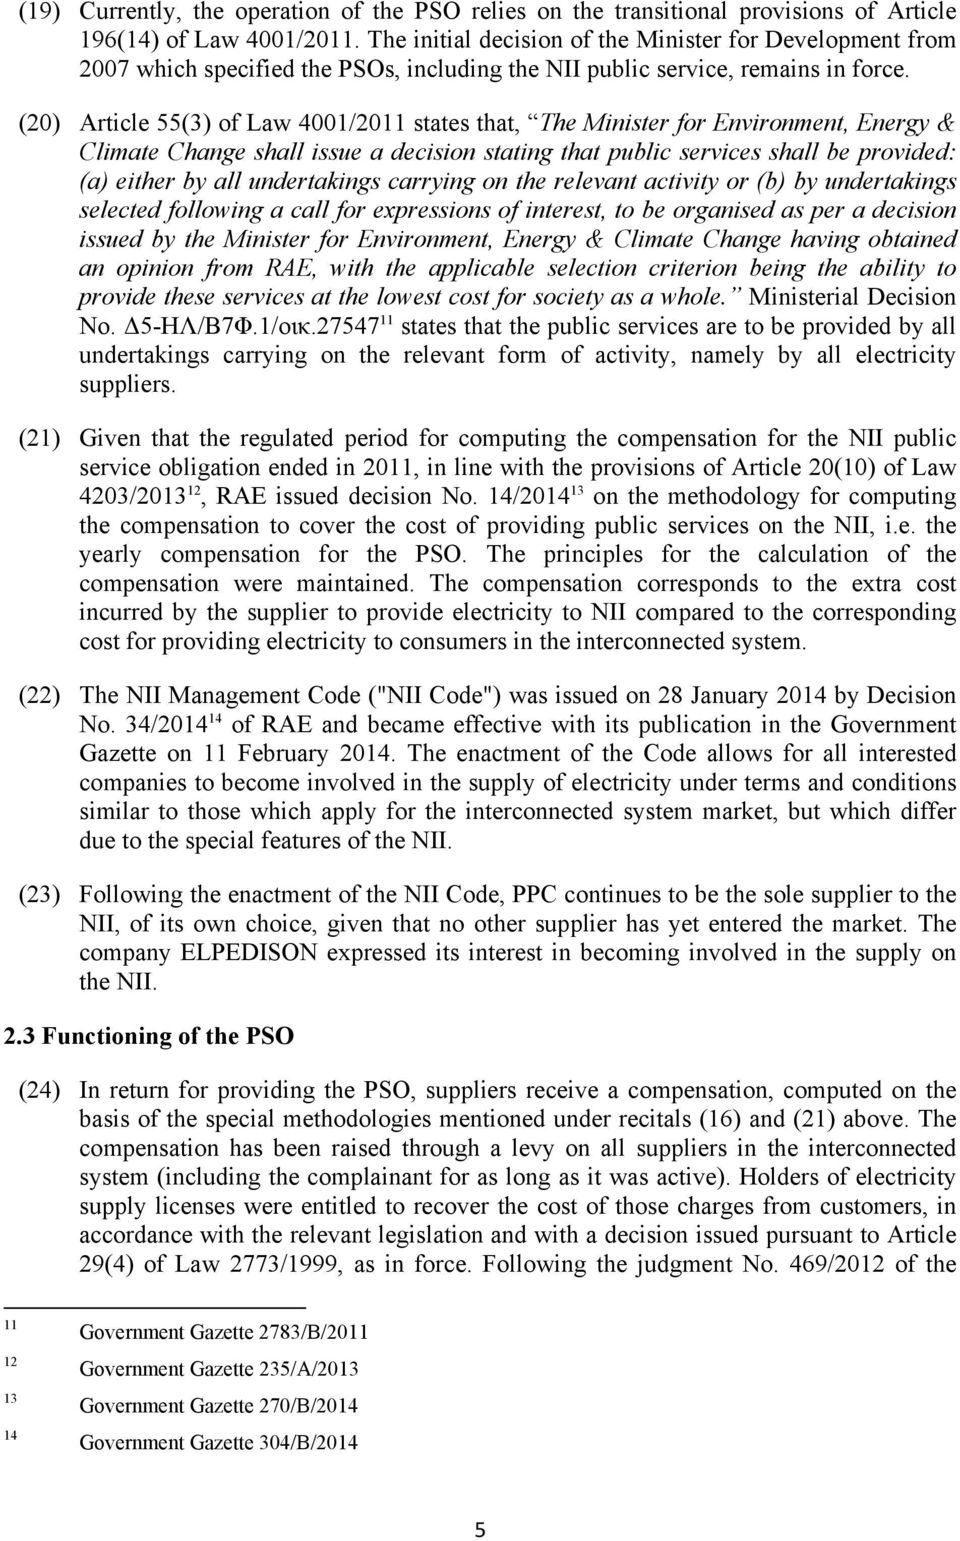 (20) Article 55(3) of Law 4001/2011 states that, The Minister for Environment, Energy & Climate Change shall issue a decision stating that public services shall be provided: (a) either by all